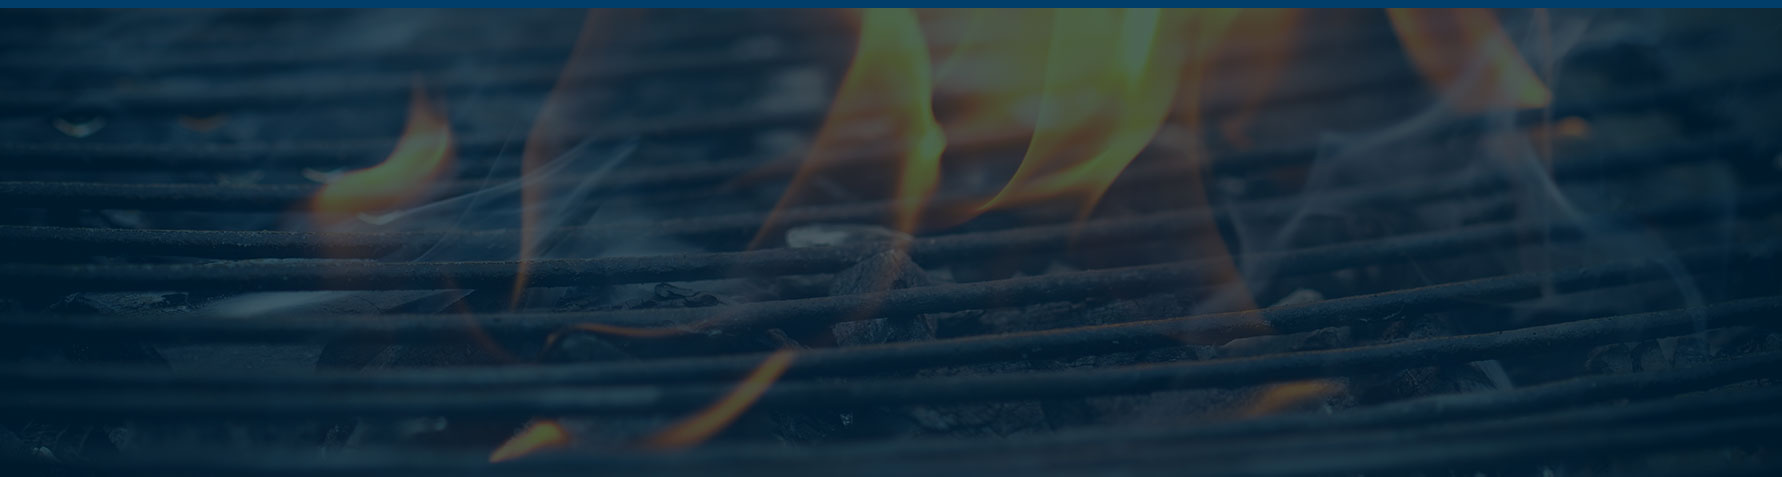 Grill Design Landing Page